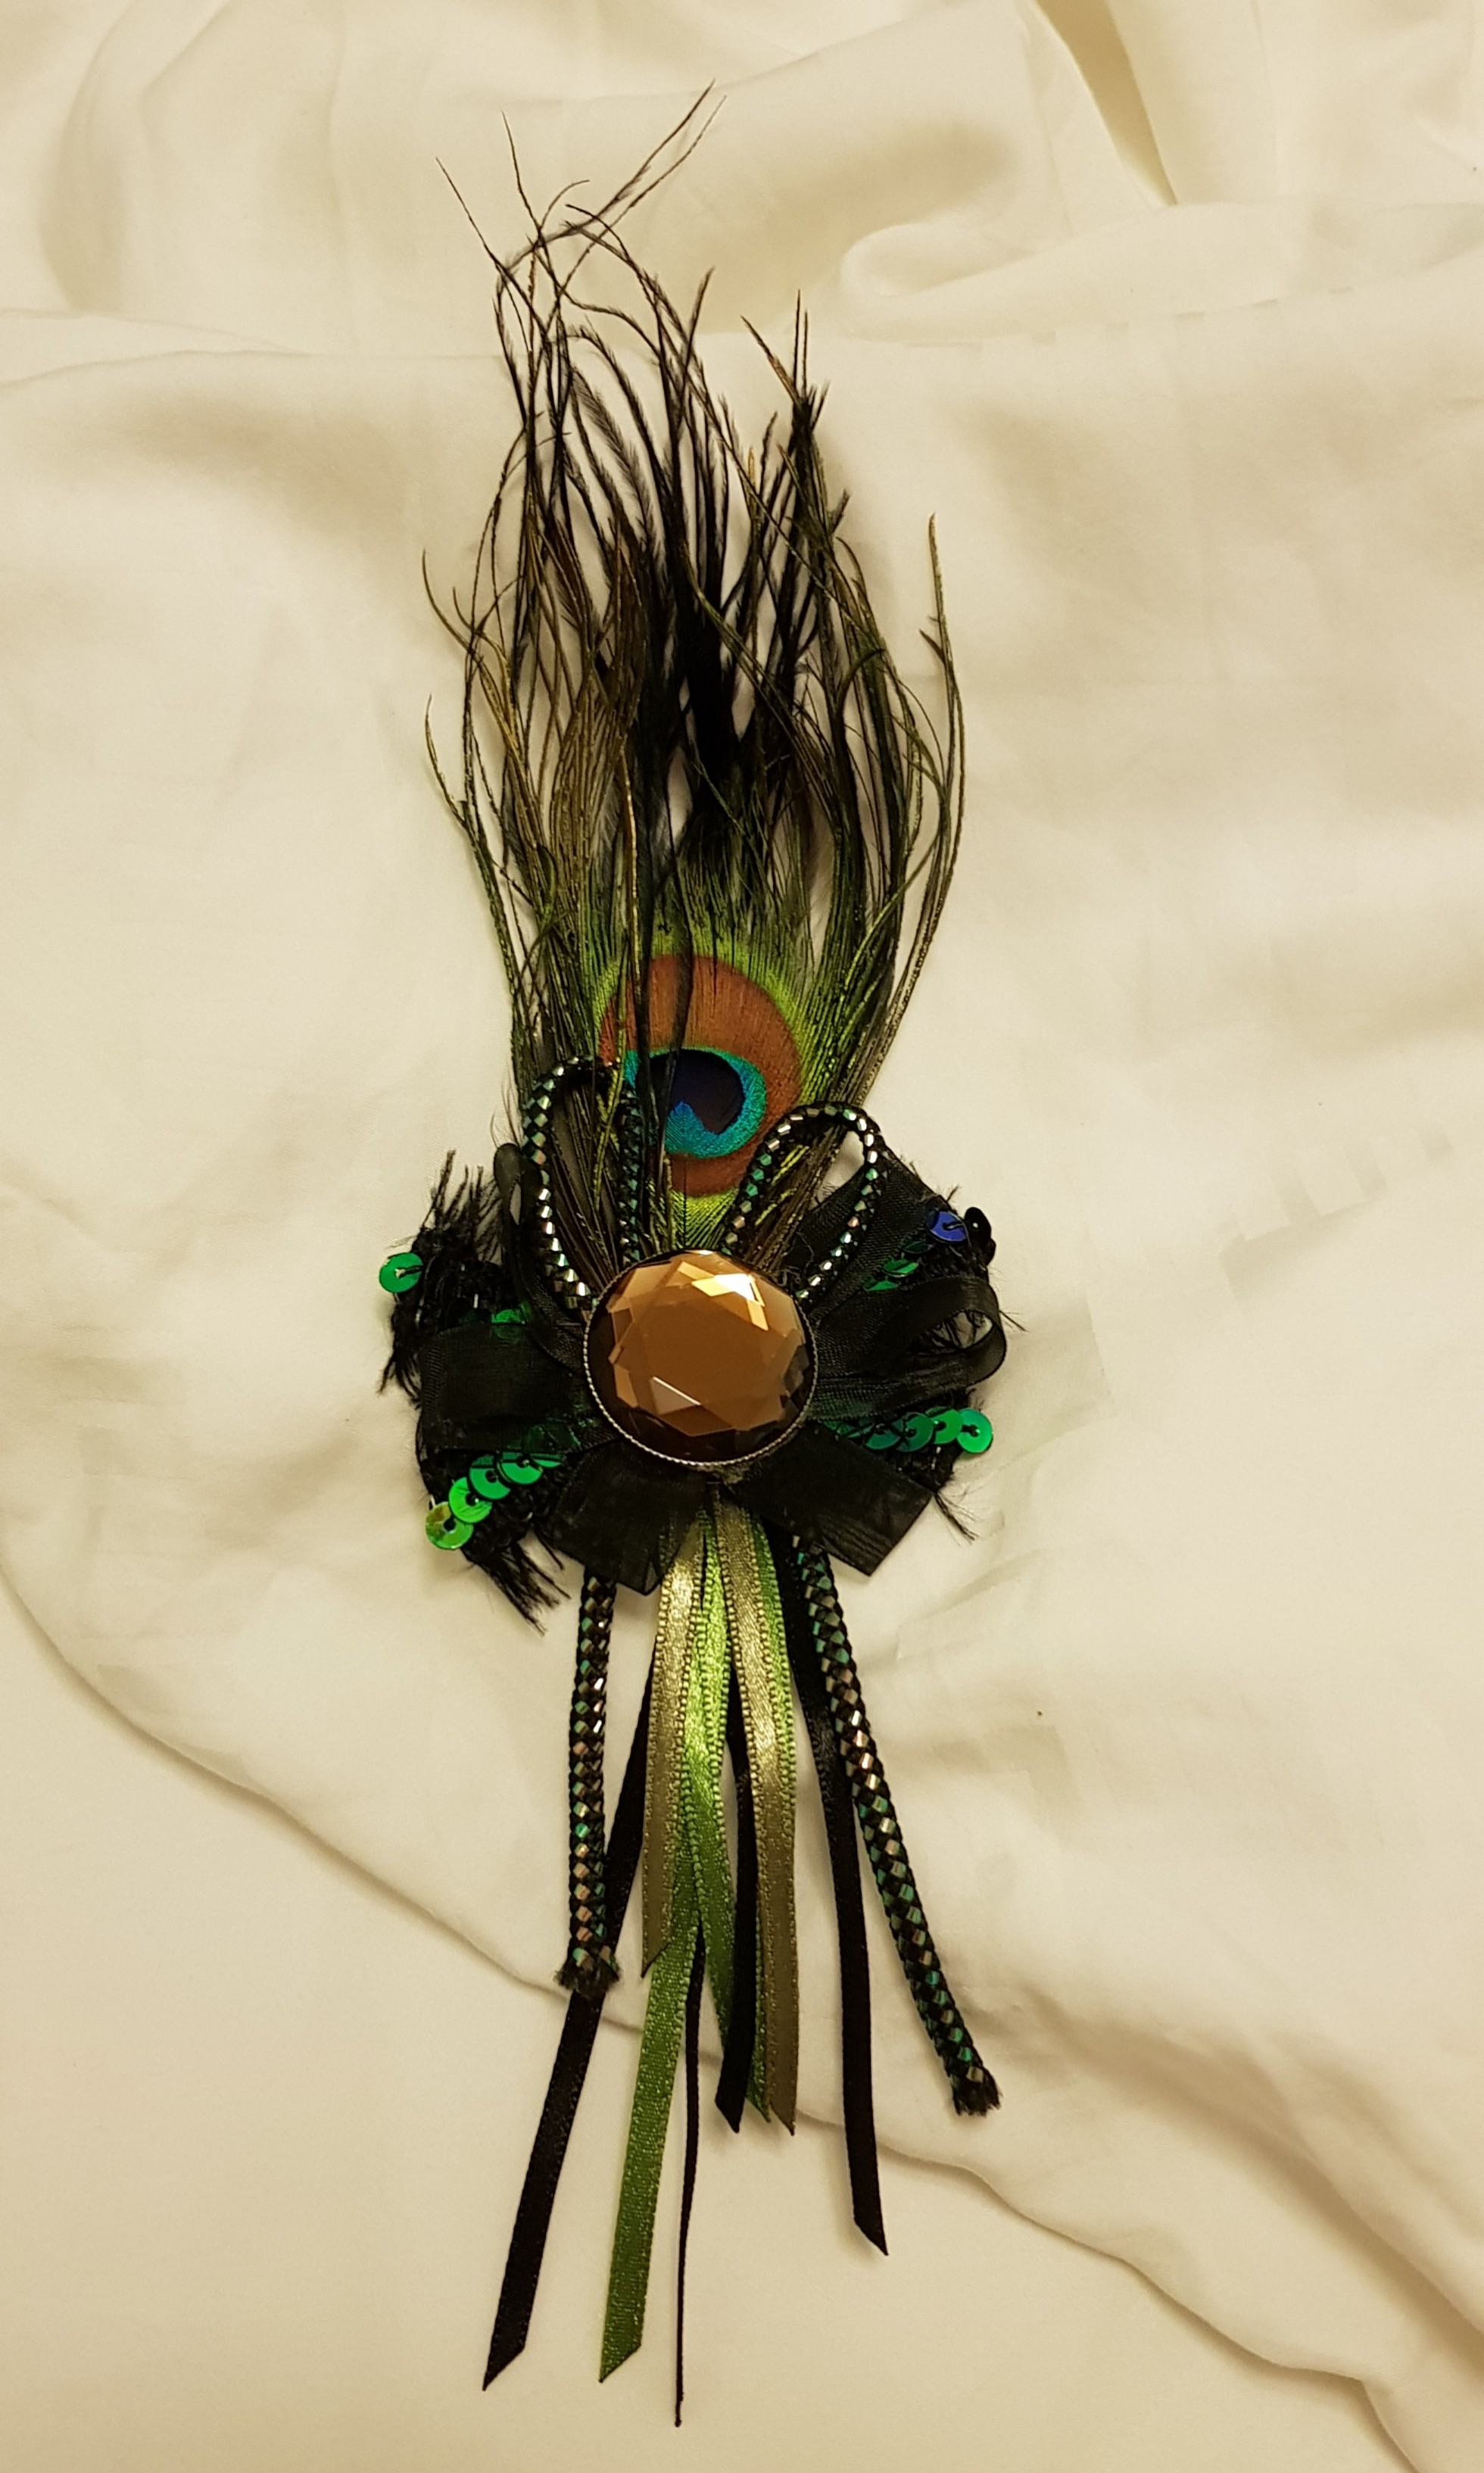 6b3efc503 Peacock brooch, Women's Fashion, Jewellery, Brooches on Carousell